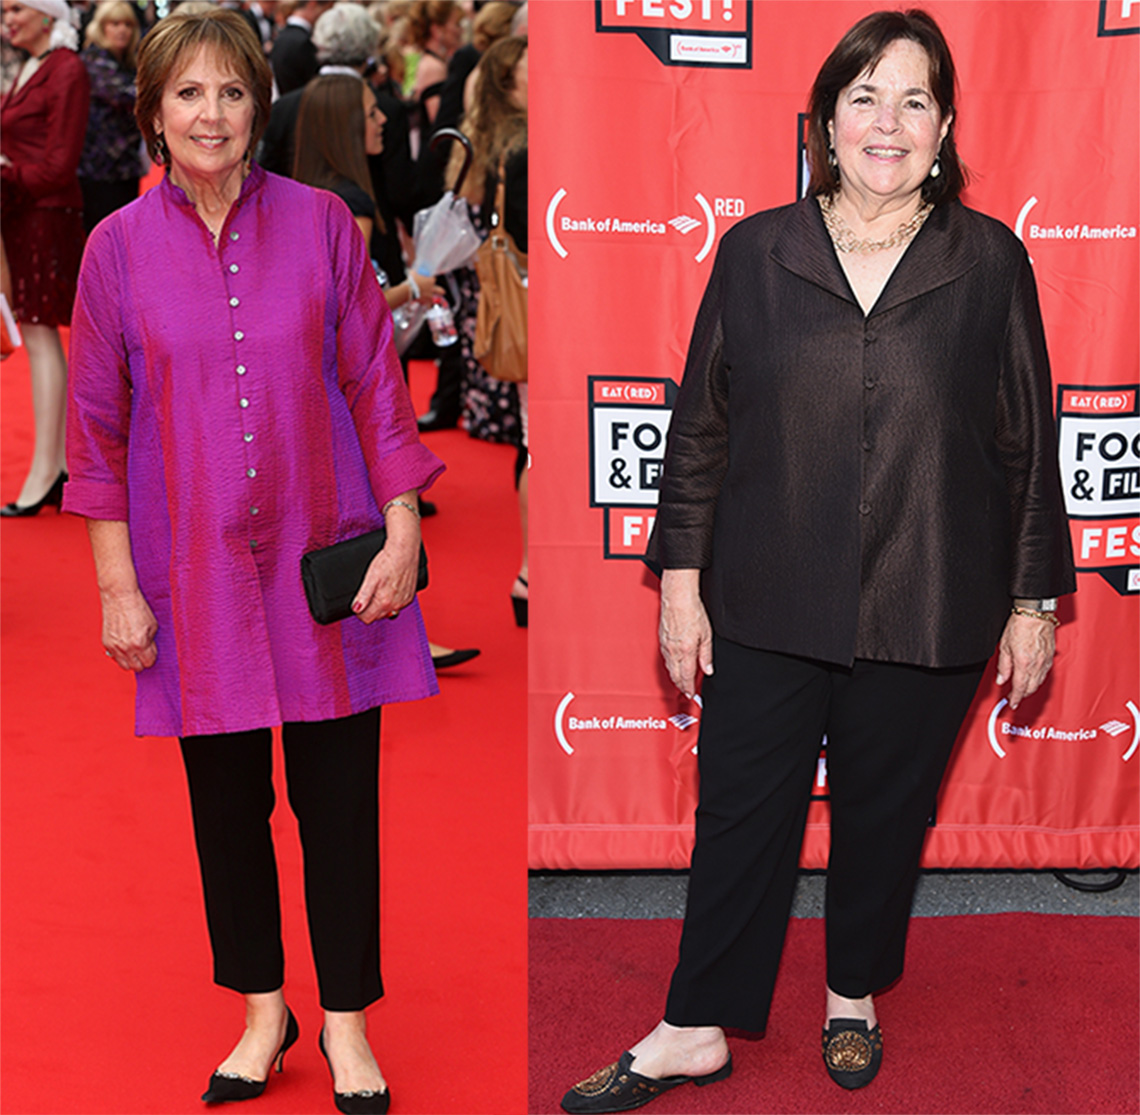 Penelope Wilton and Chef Ina Garten with tunics.